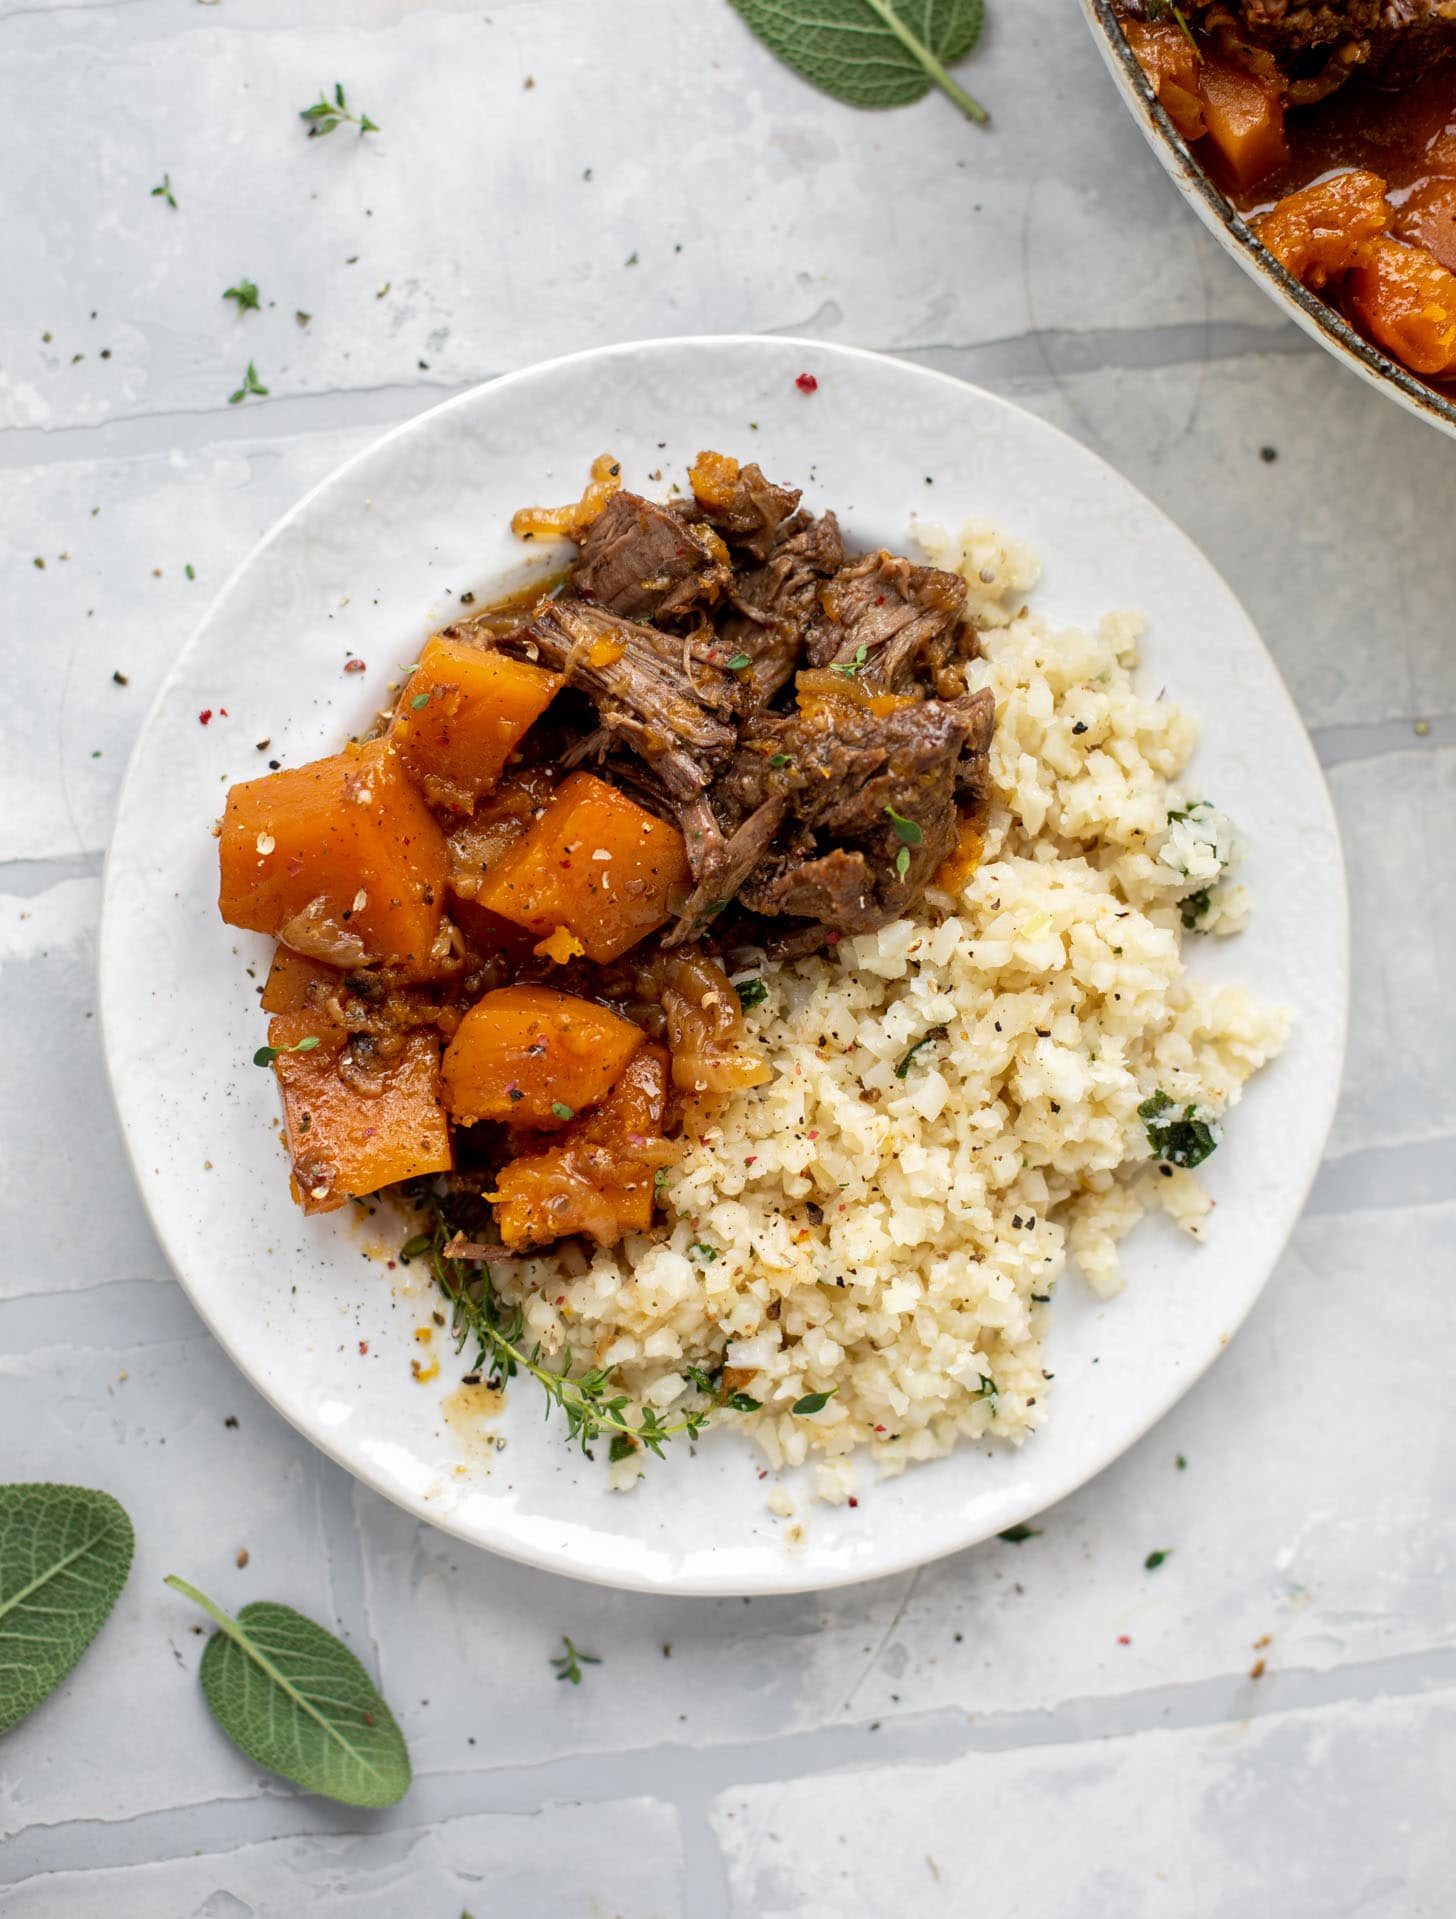 cider braised pot roast with caramelized onions, butternut squash and cauliflower rice